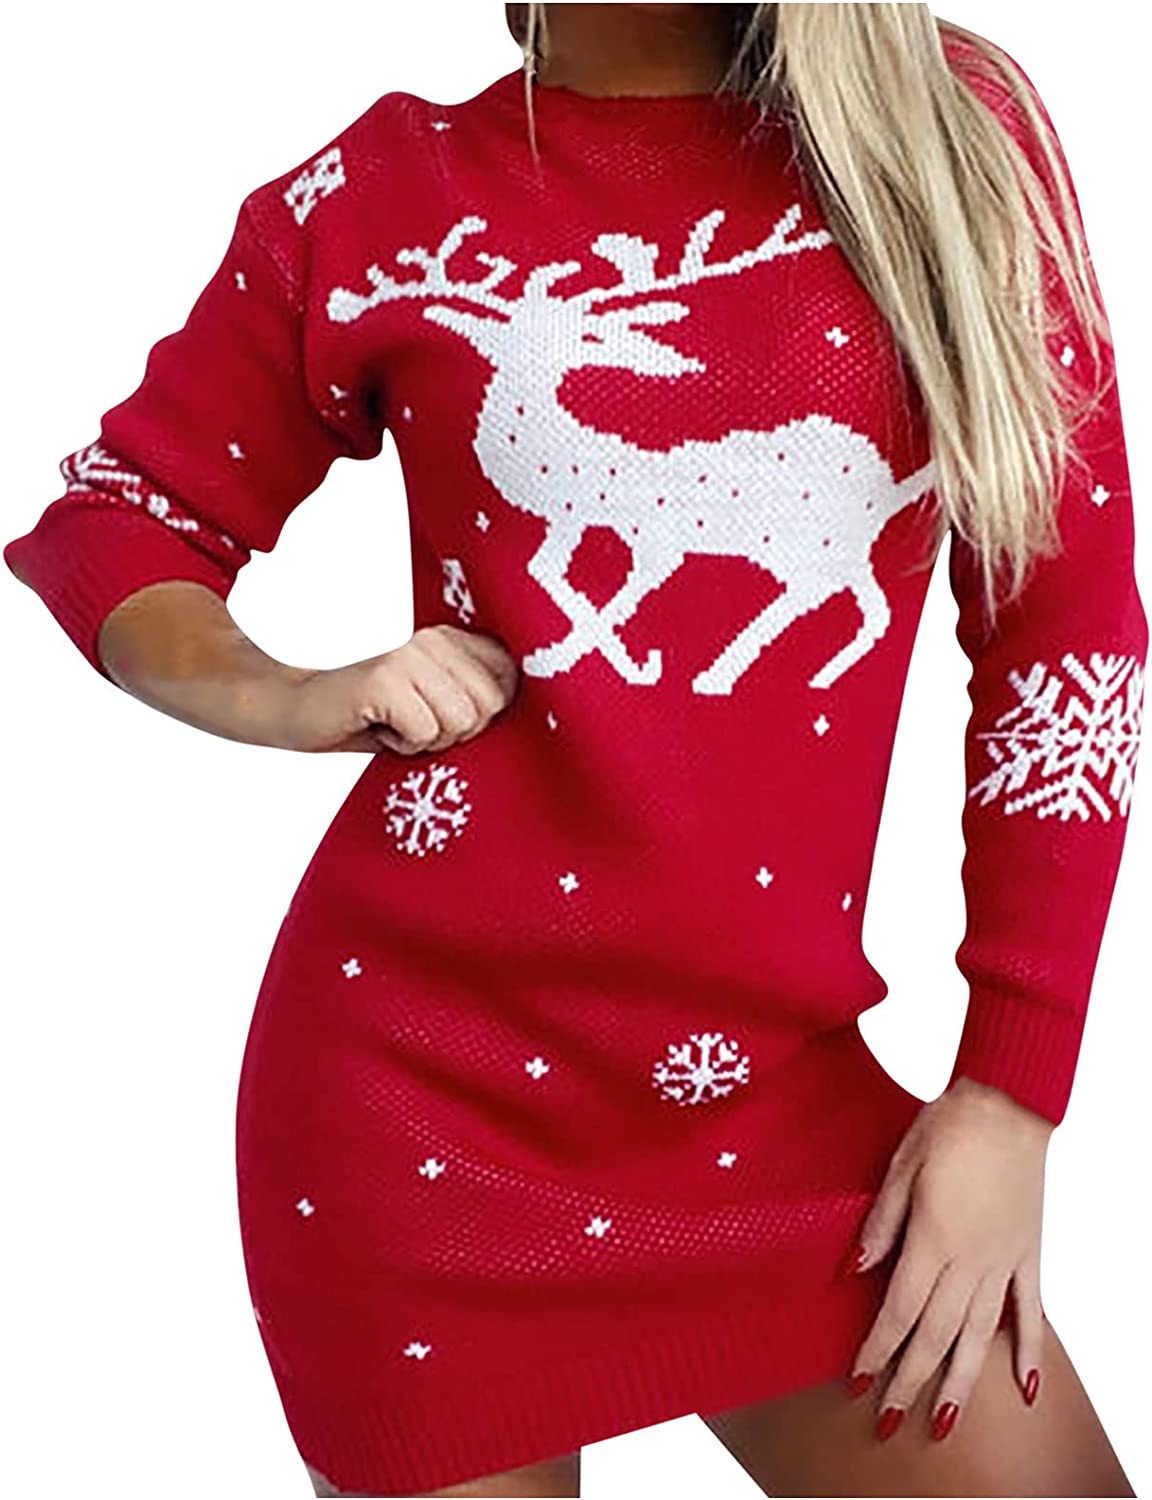 RFNIU Womens Christmas Sweater Dress Fashion Graphic Baggy Long Sleeve Knit Jumper Sweaters Casual Crewneck Blouses Tops